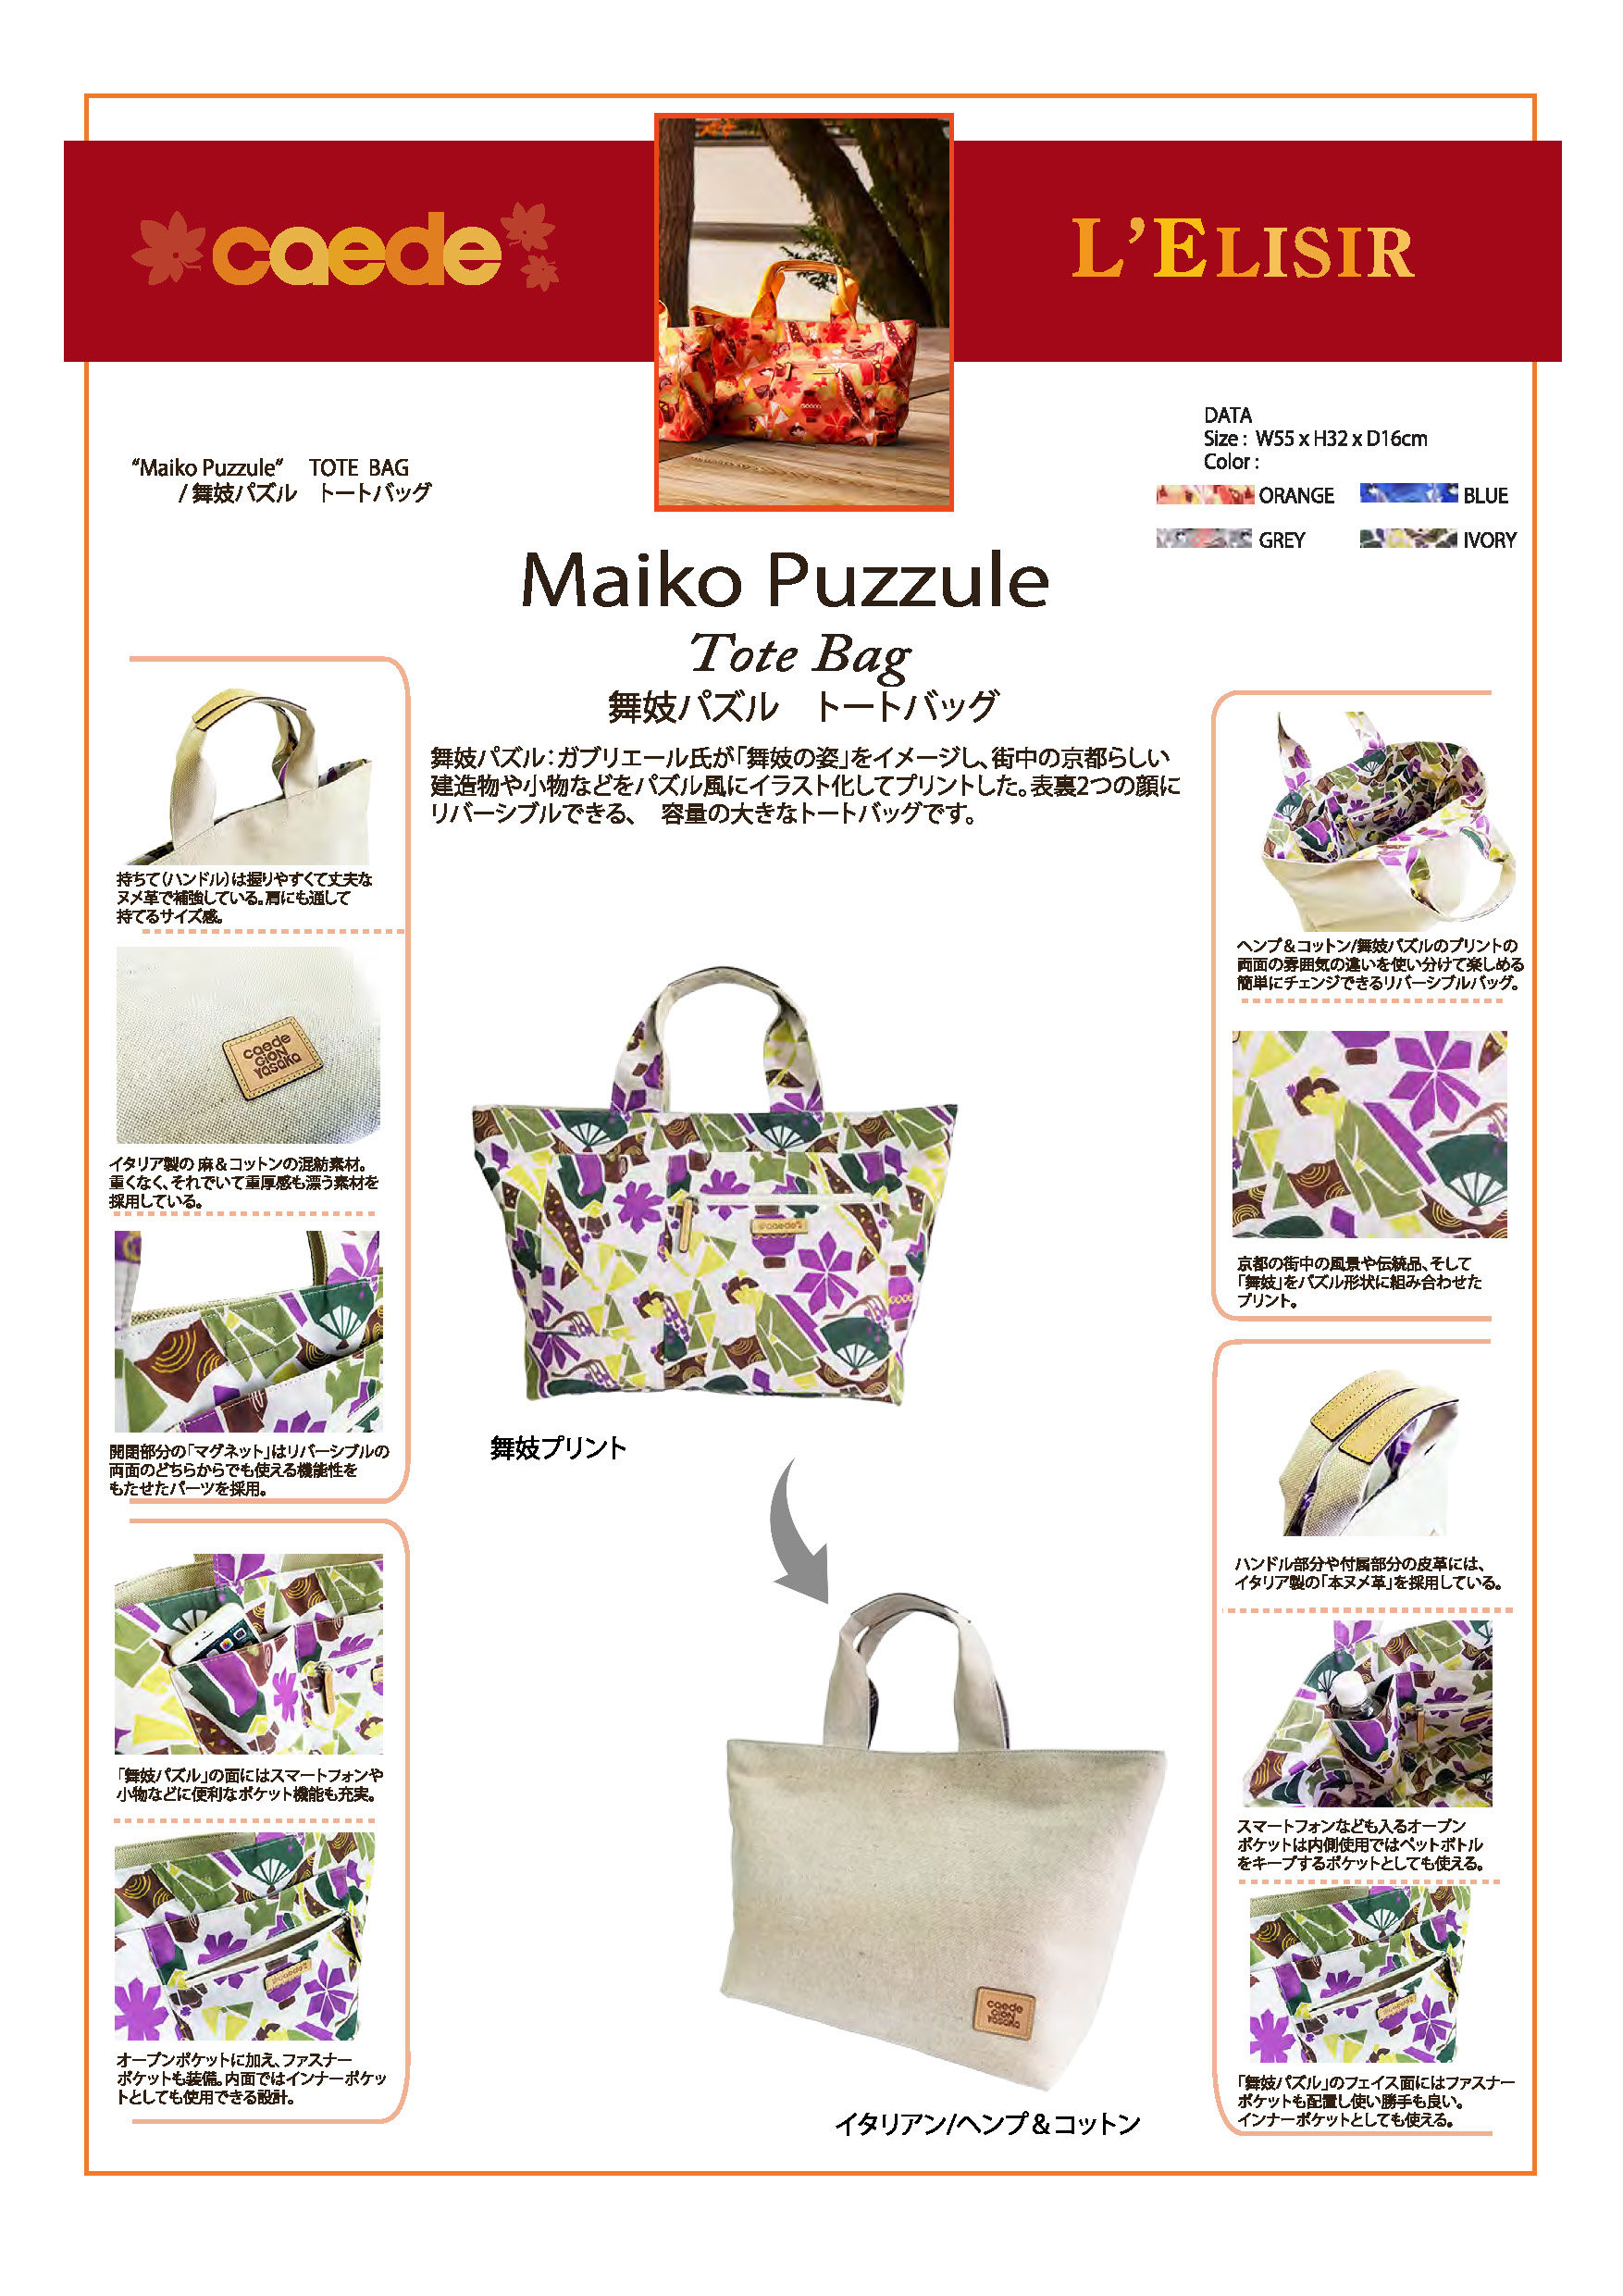 72663-maiko-puzzule-tote-bag機能説明